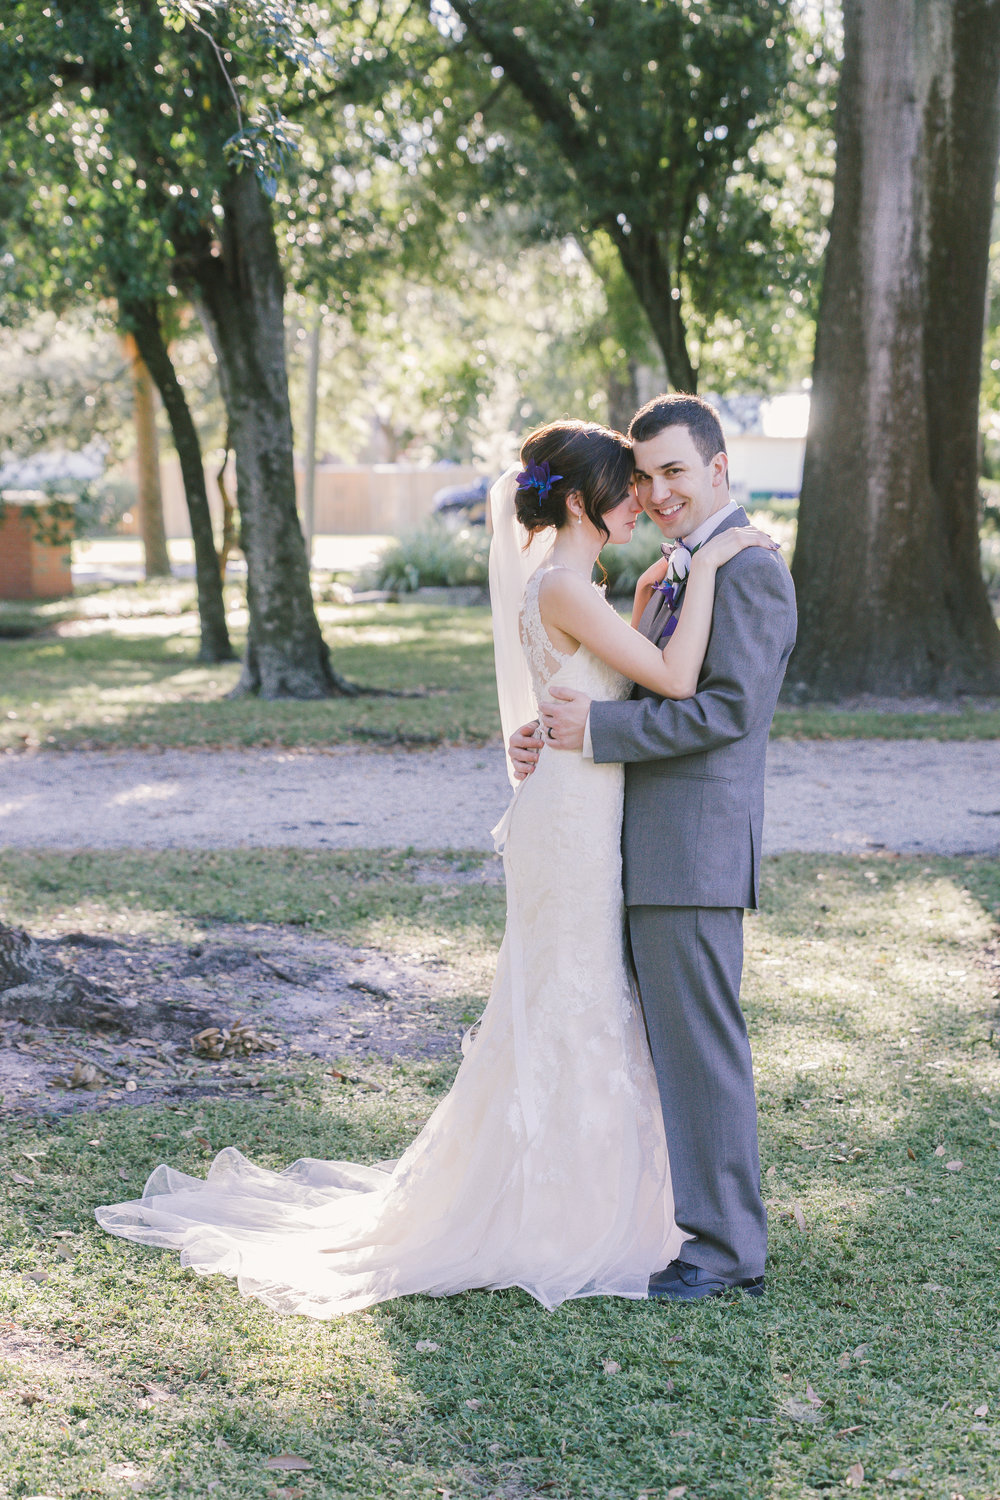 wedding photography, weddings, garden wedding ideas, garden weddings